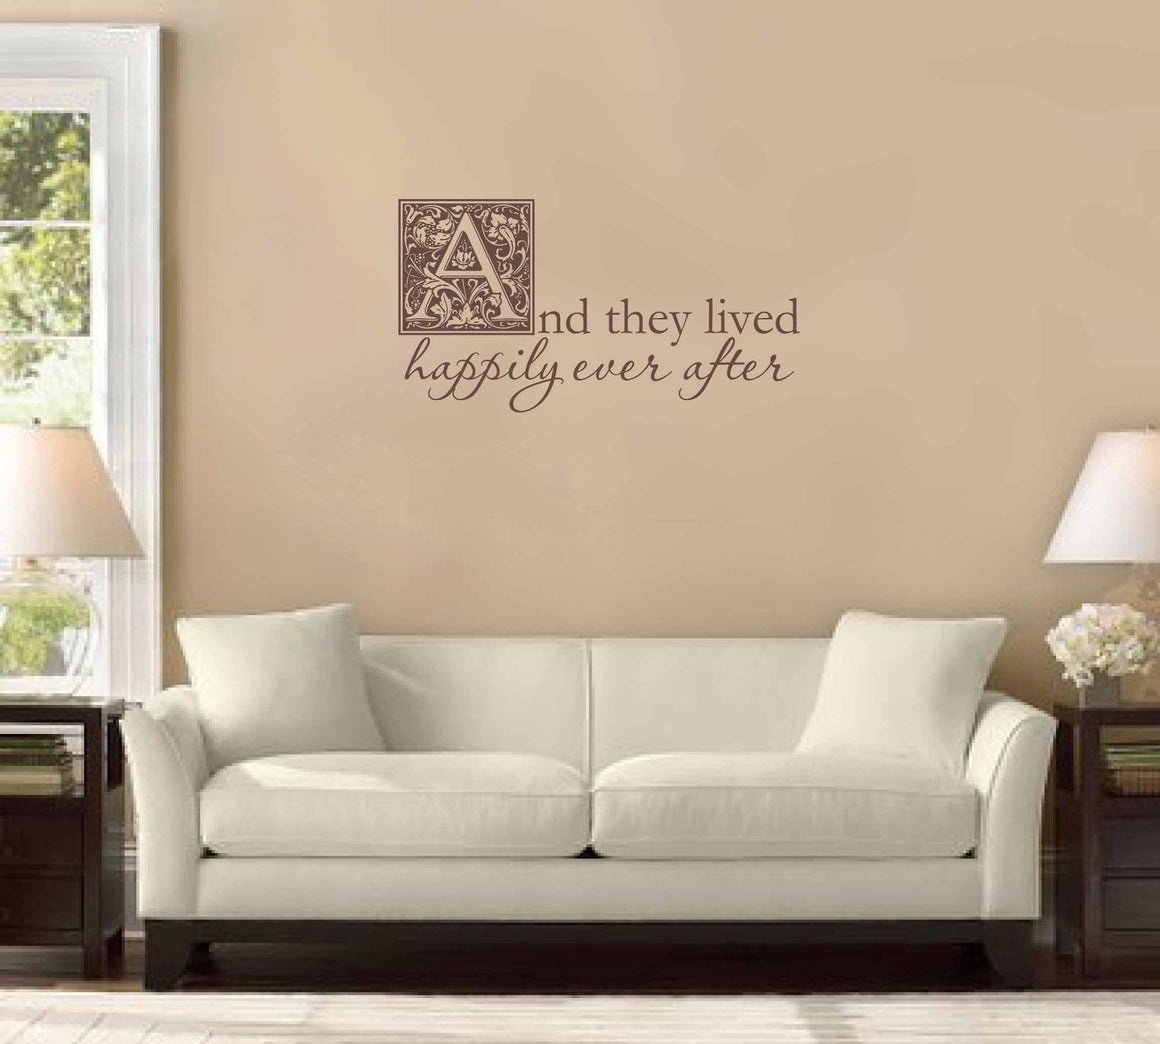 And they lived happily ever after - Wall Decal